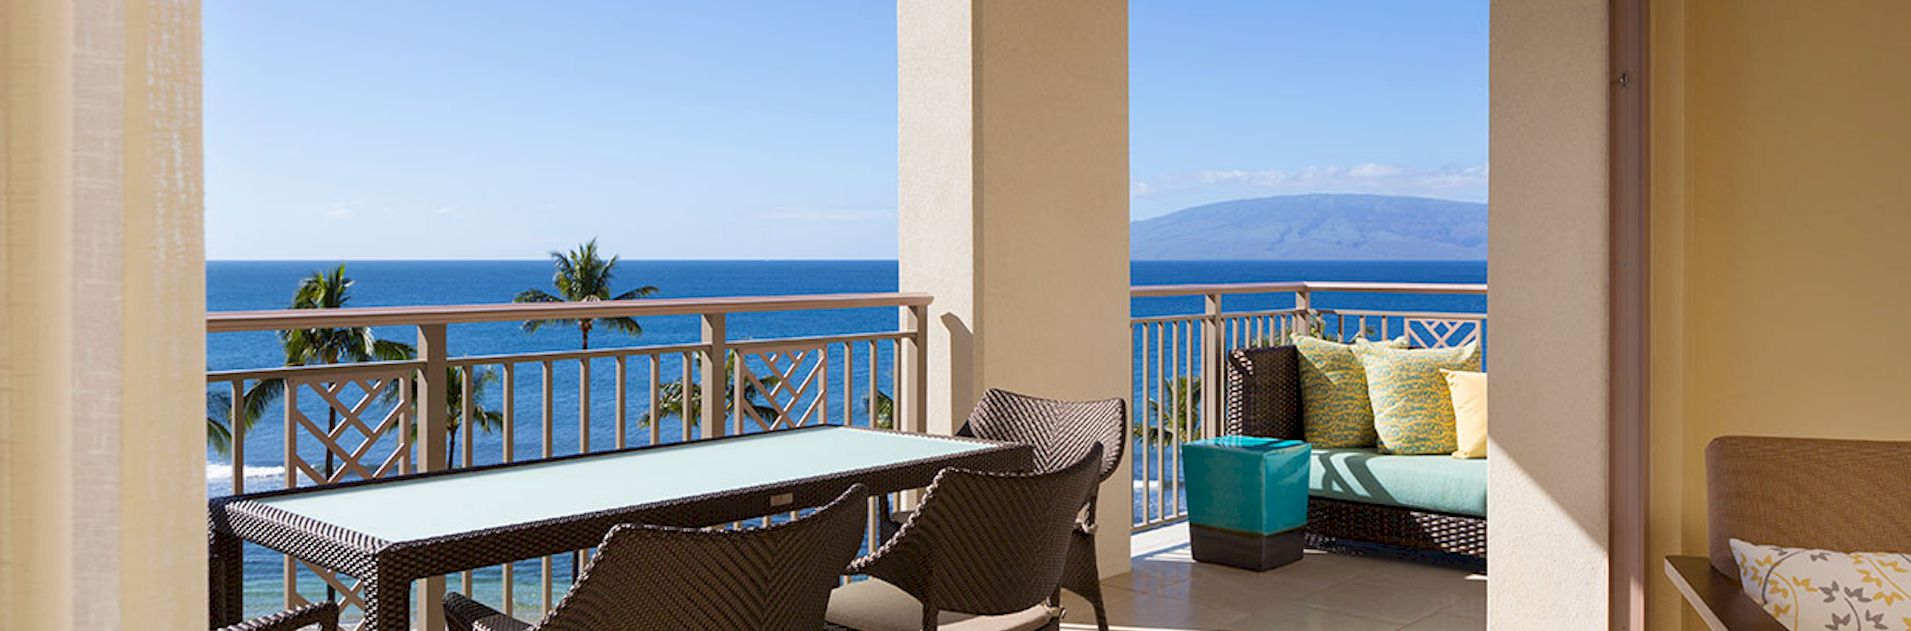 Hyatt-Kaanapali-Beach-Maui-terrace-view